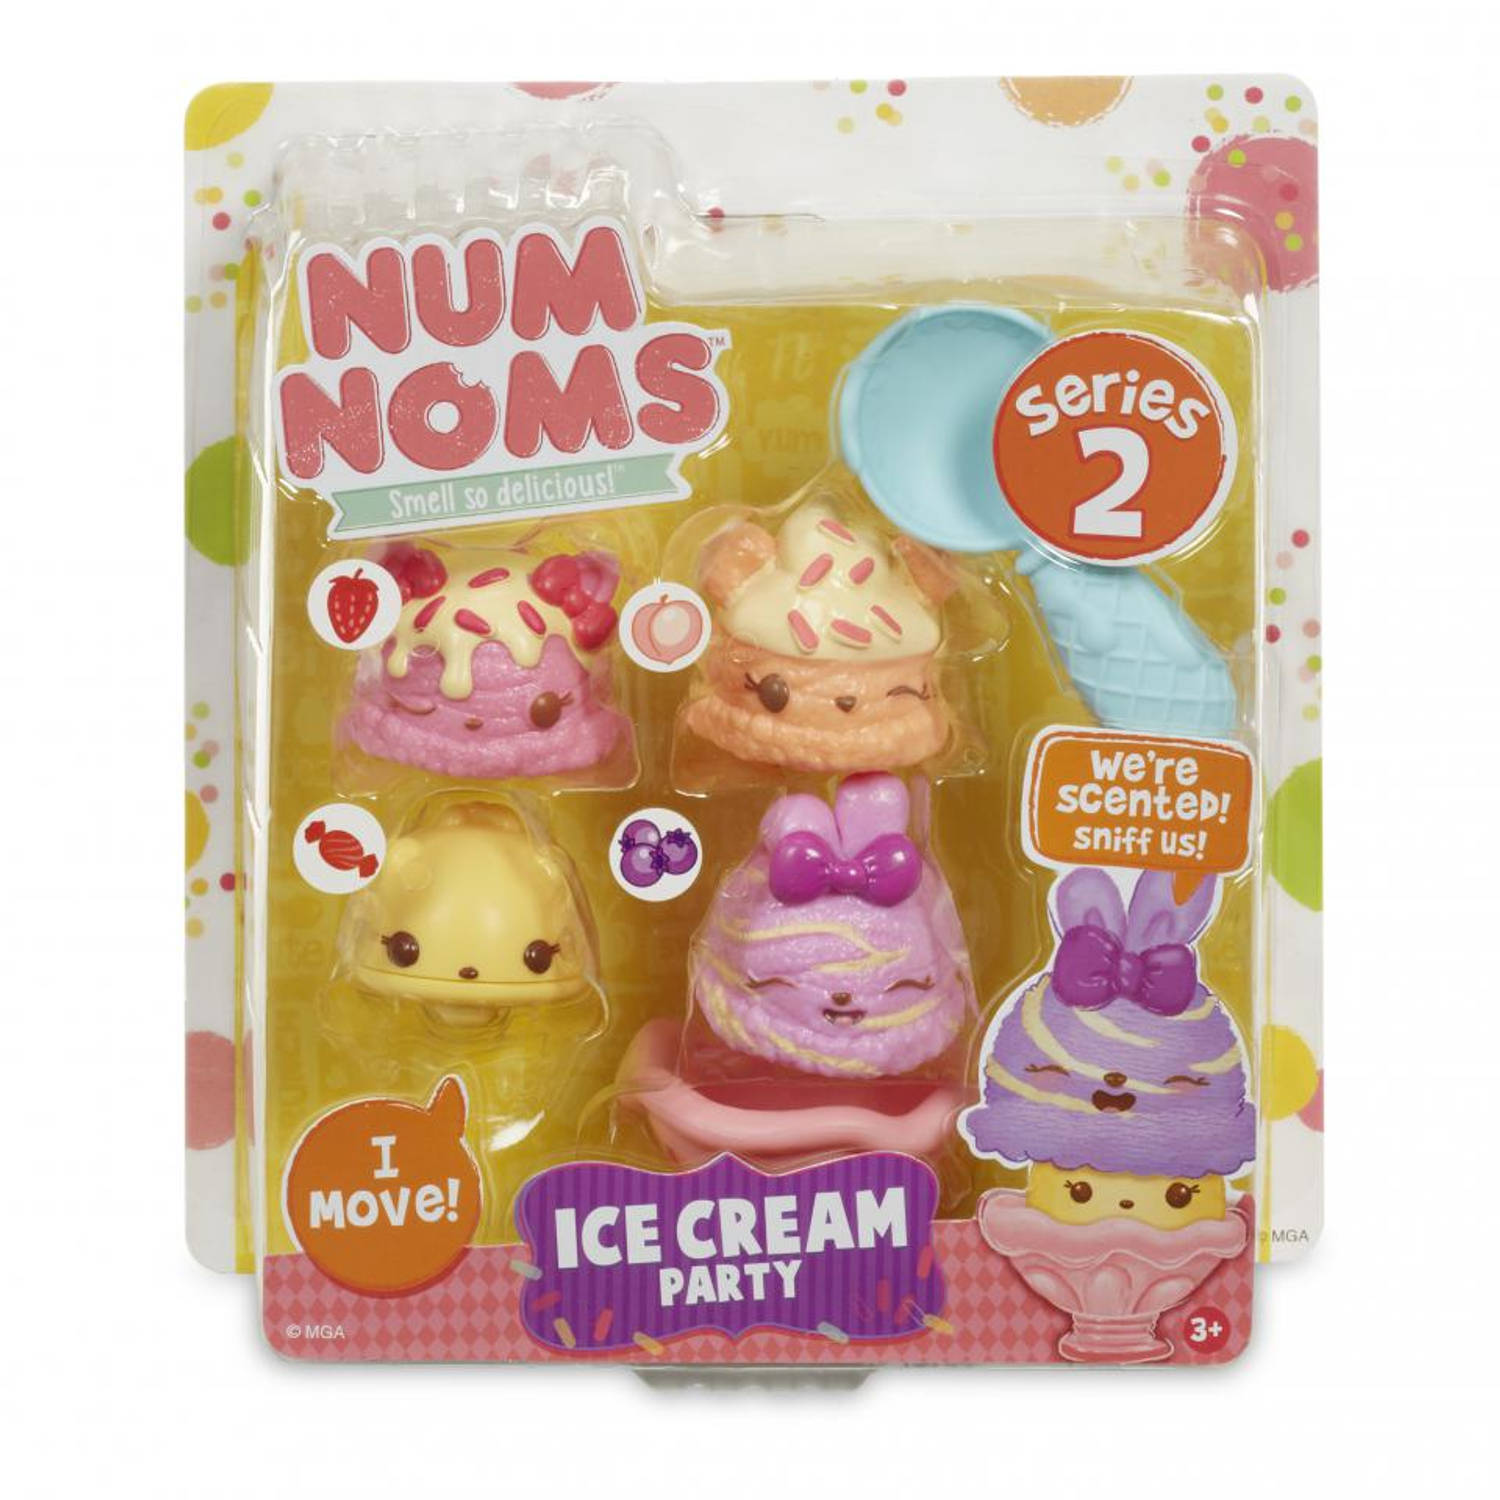 Num Noms Ice cream party - serie 2